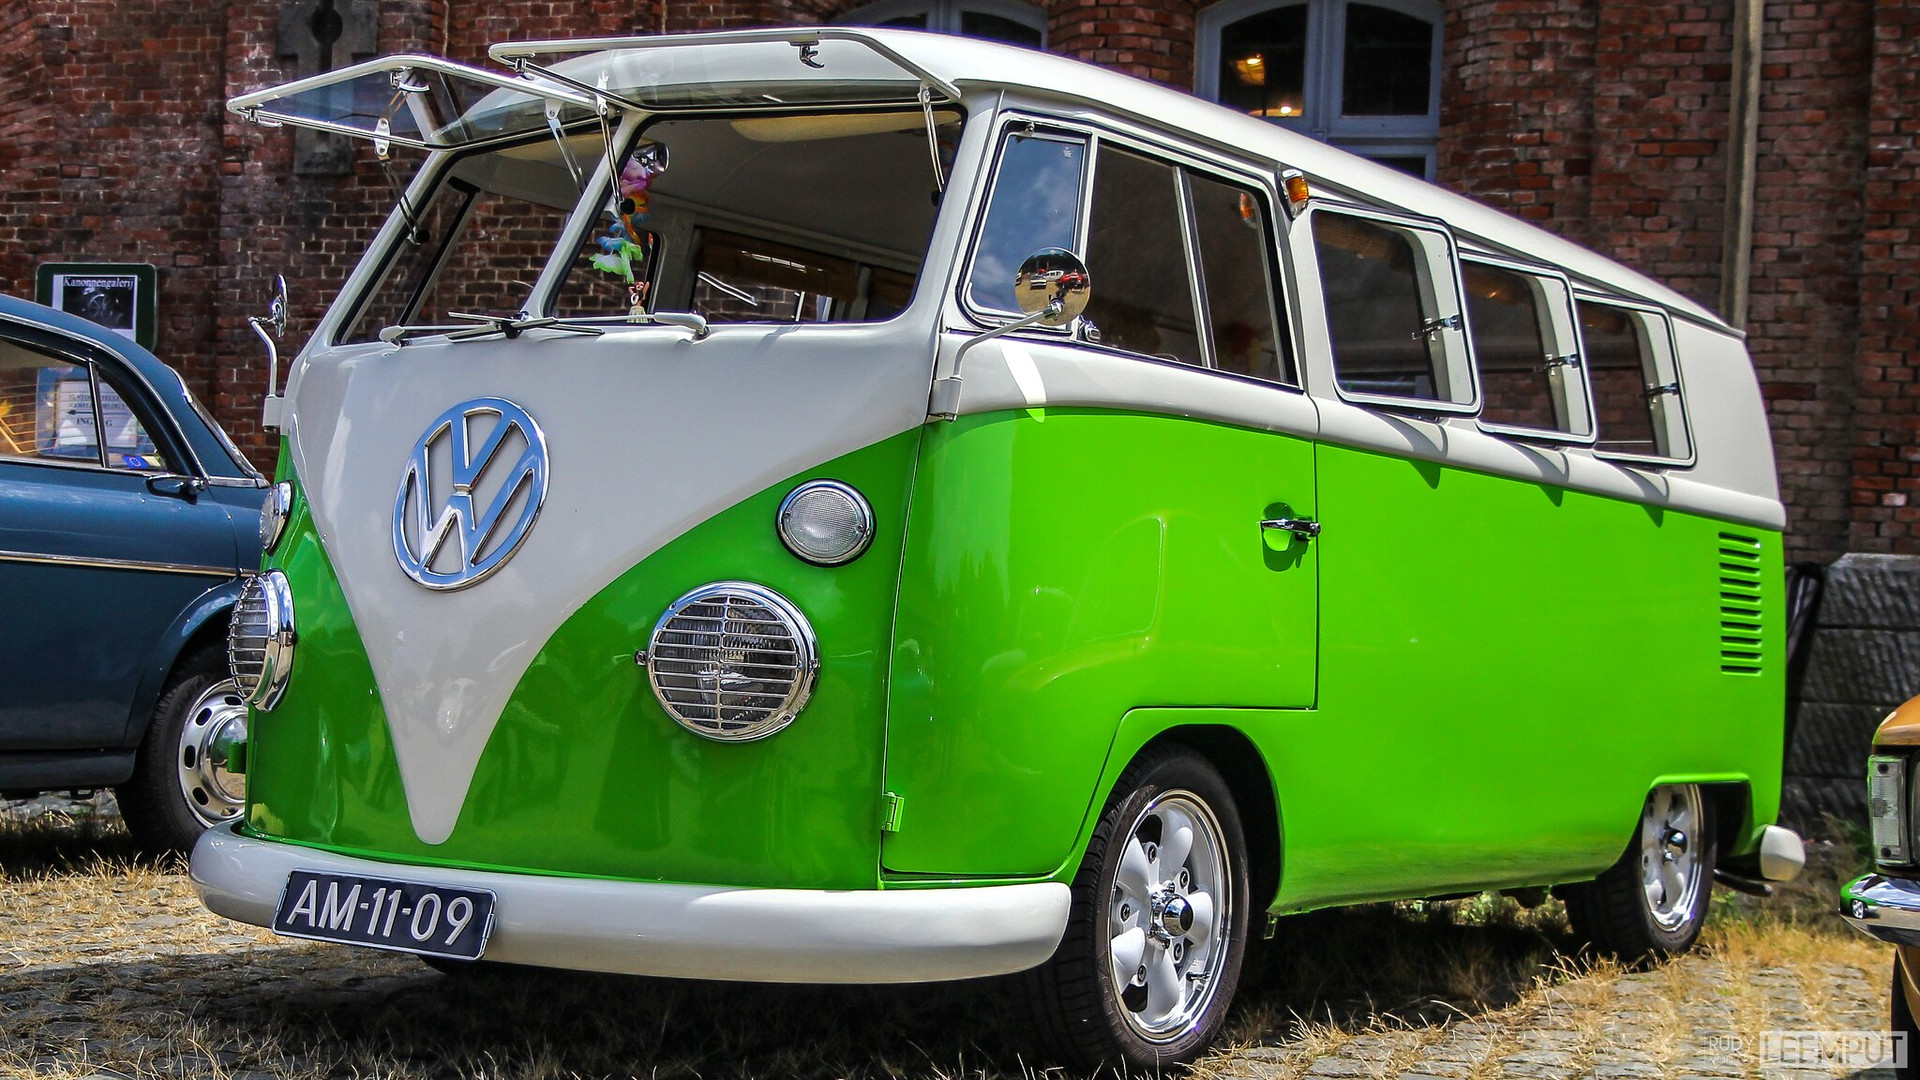 1965 | AM-11-09 | Volkswagen T1